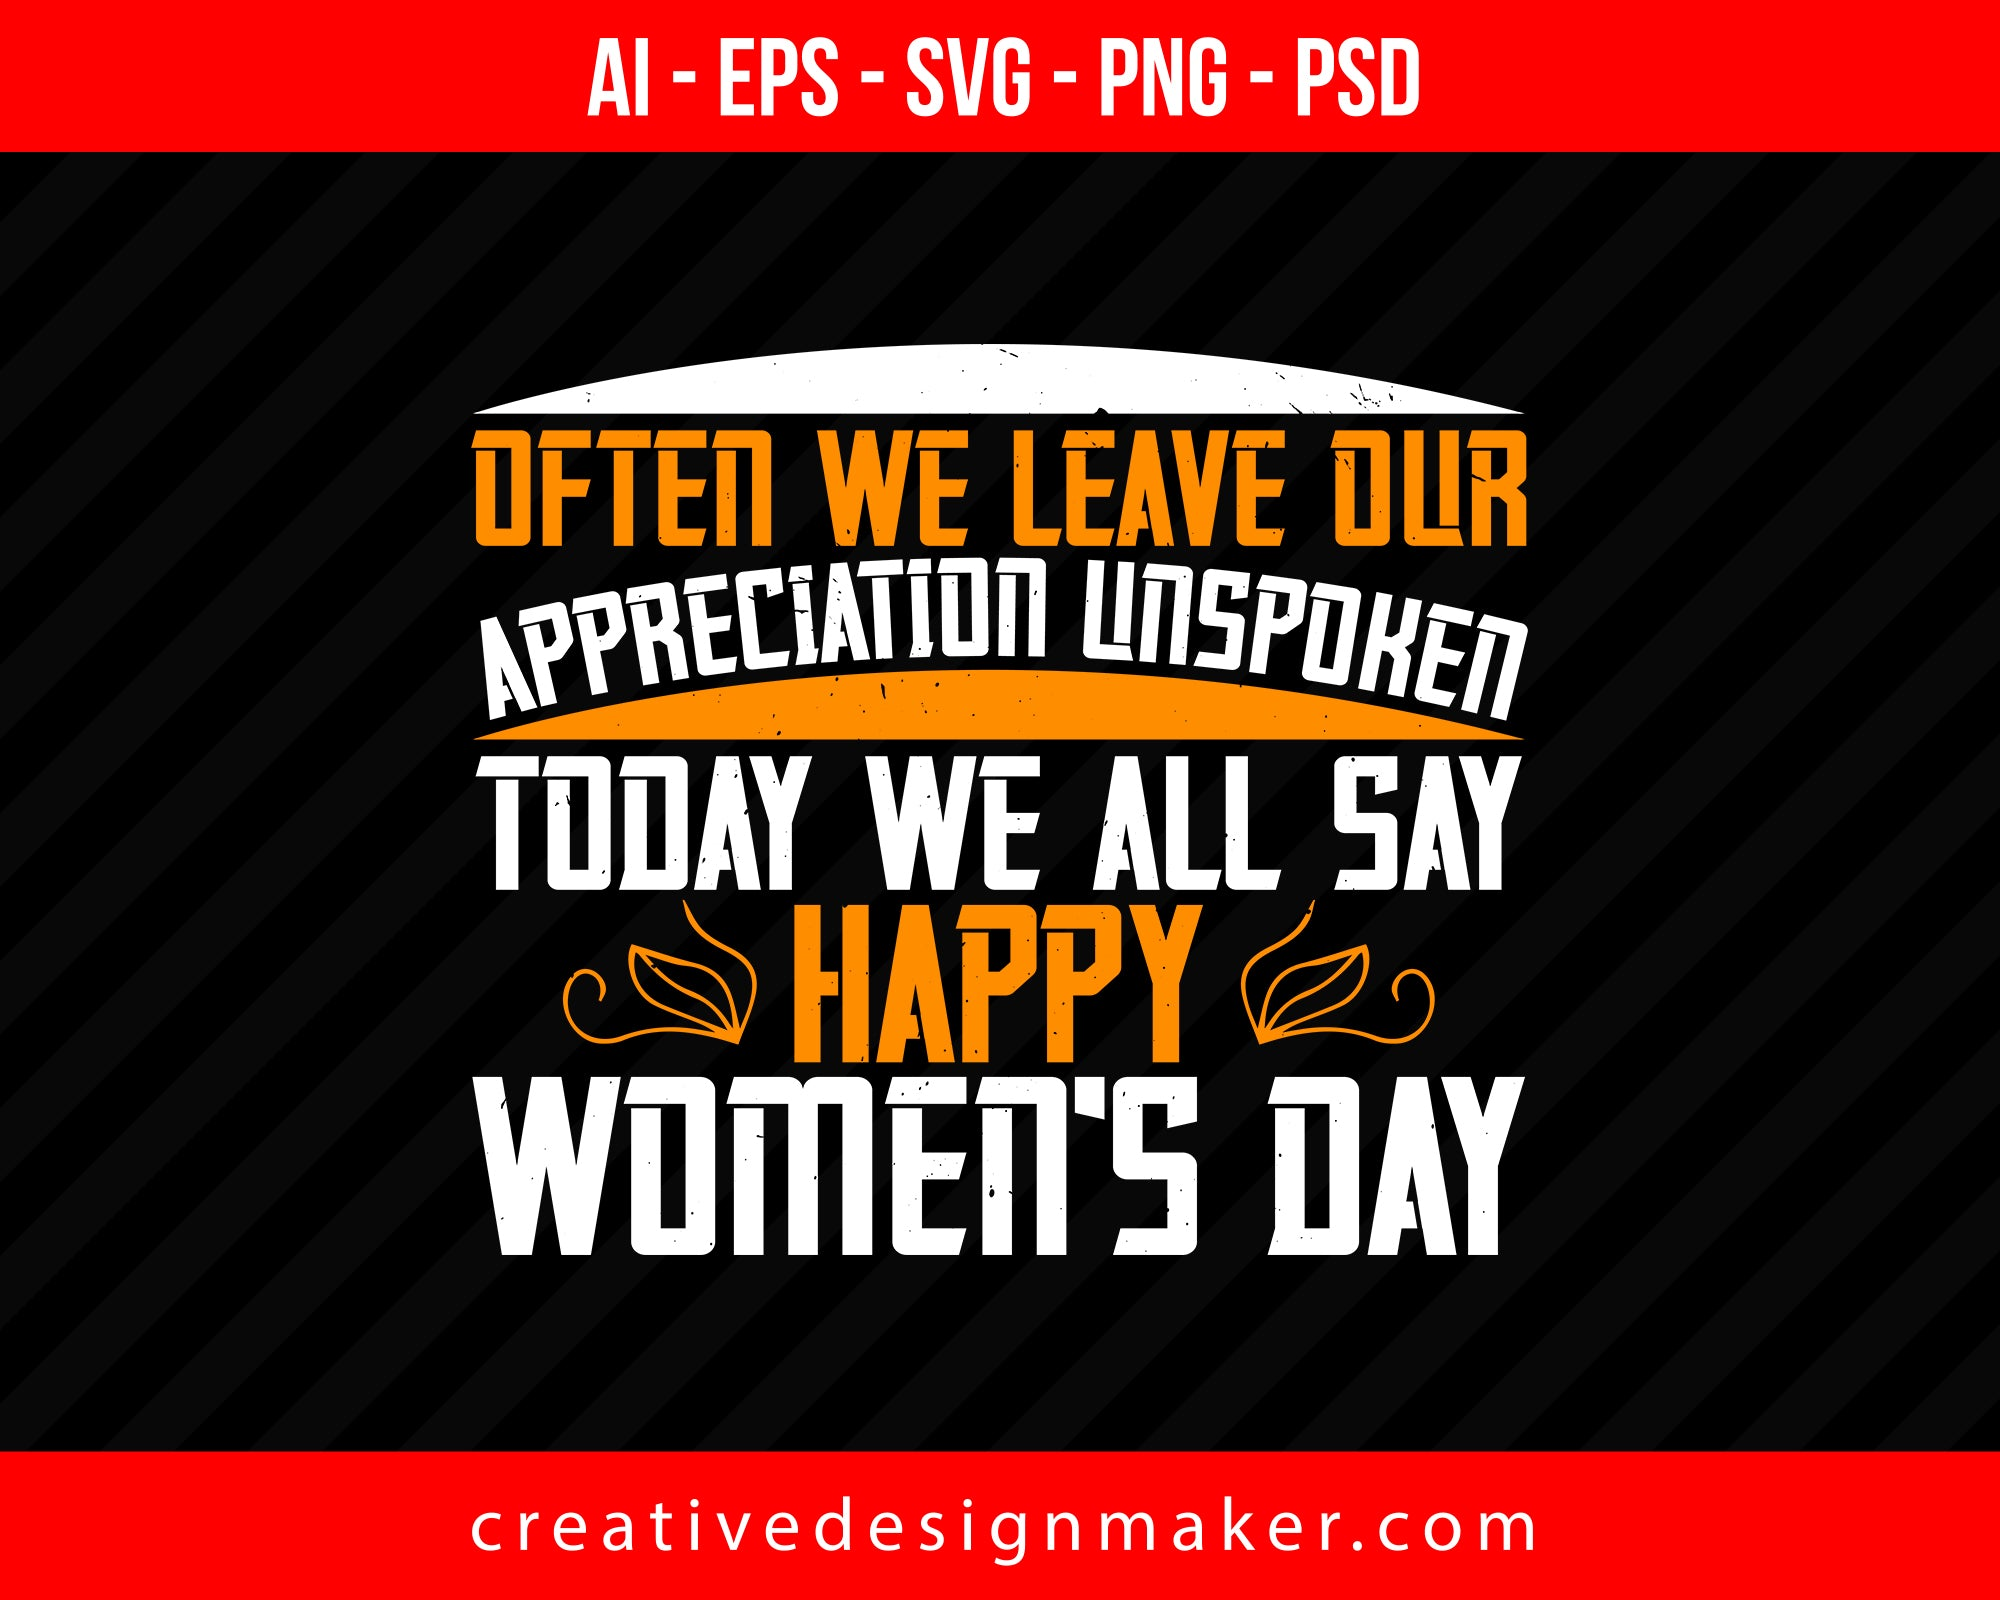 Often we leave our appreciation unspoken! Today we all say Happy Women's Day Print Ready Editable T-Shirt SVG Design!